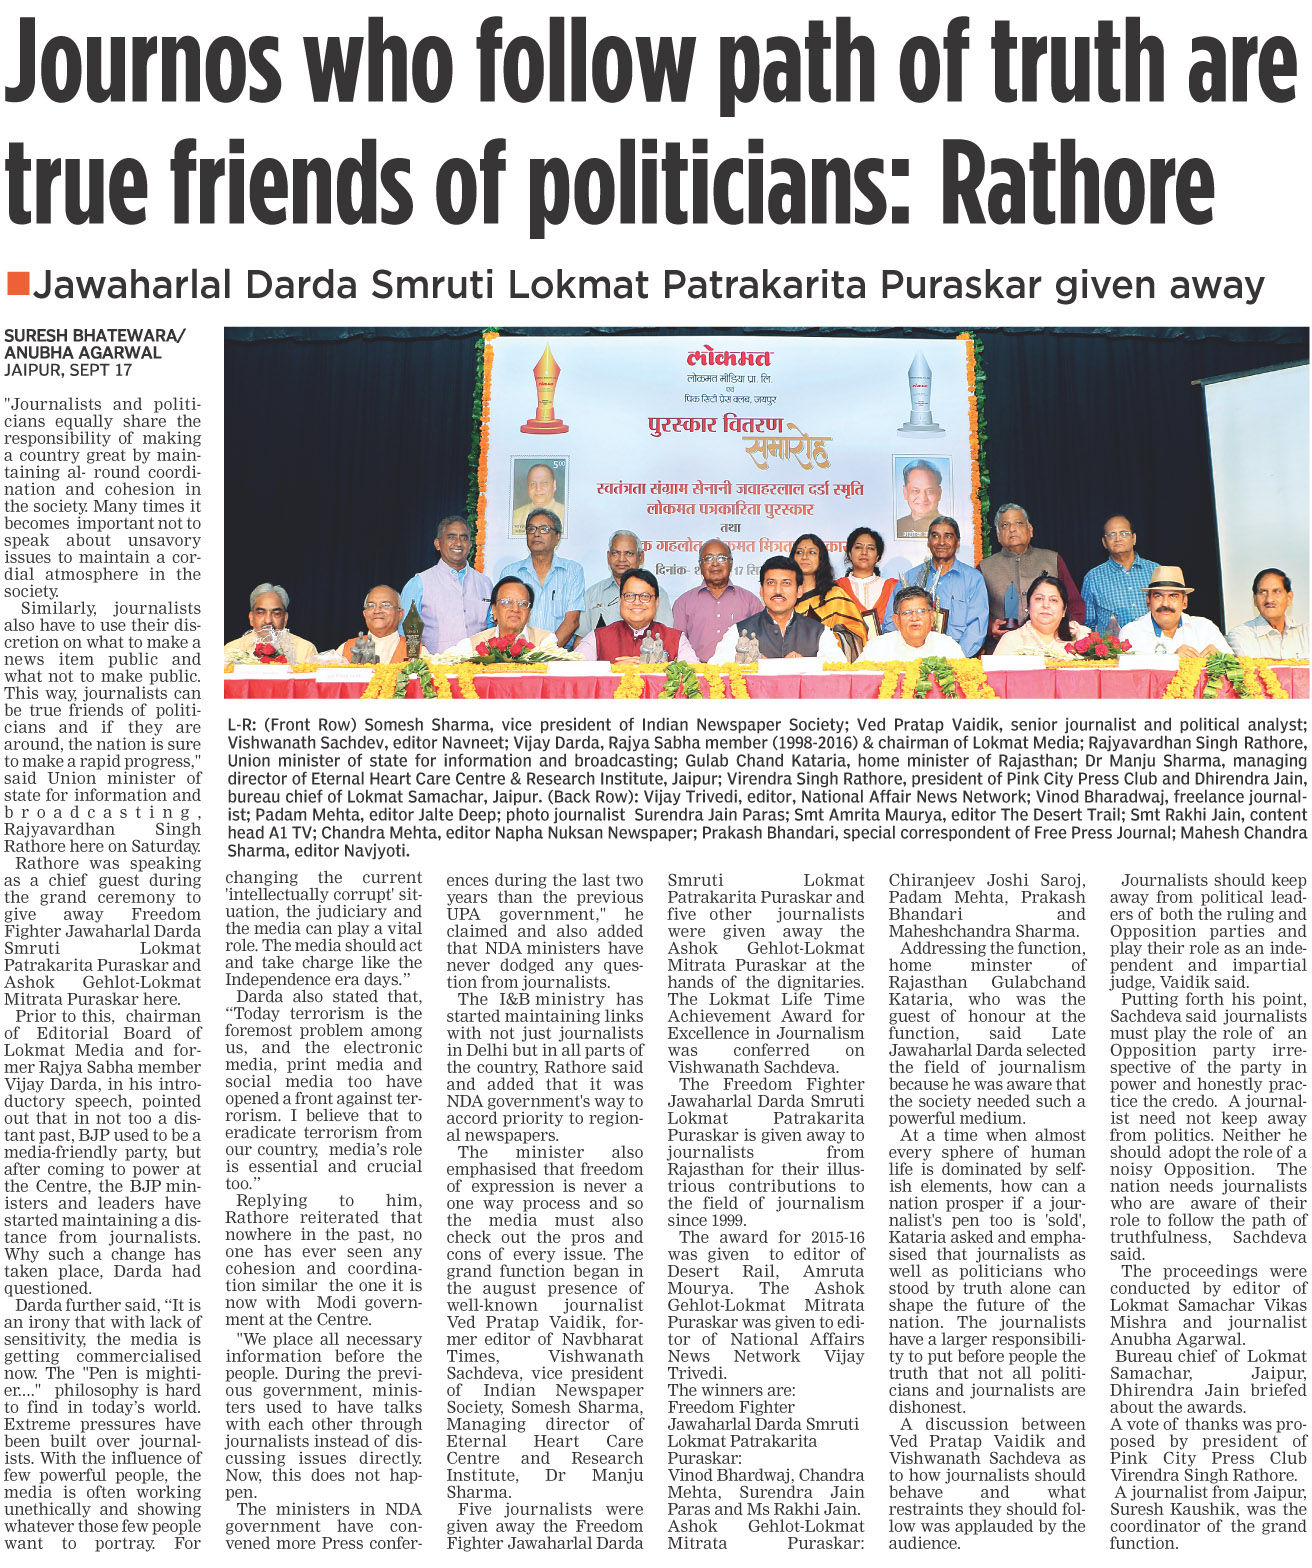 Journos who follow path of truth are true friends of politicians: Rathore